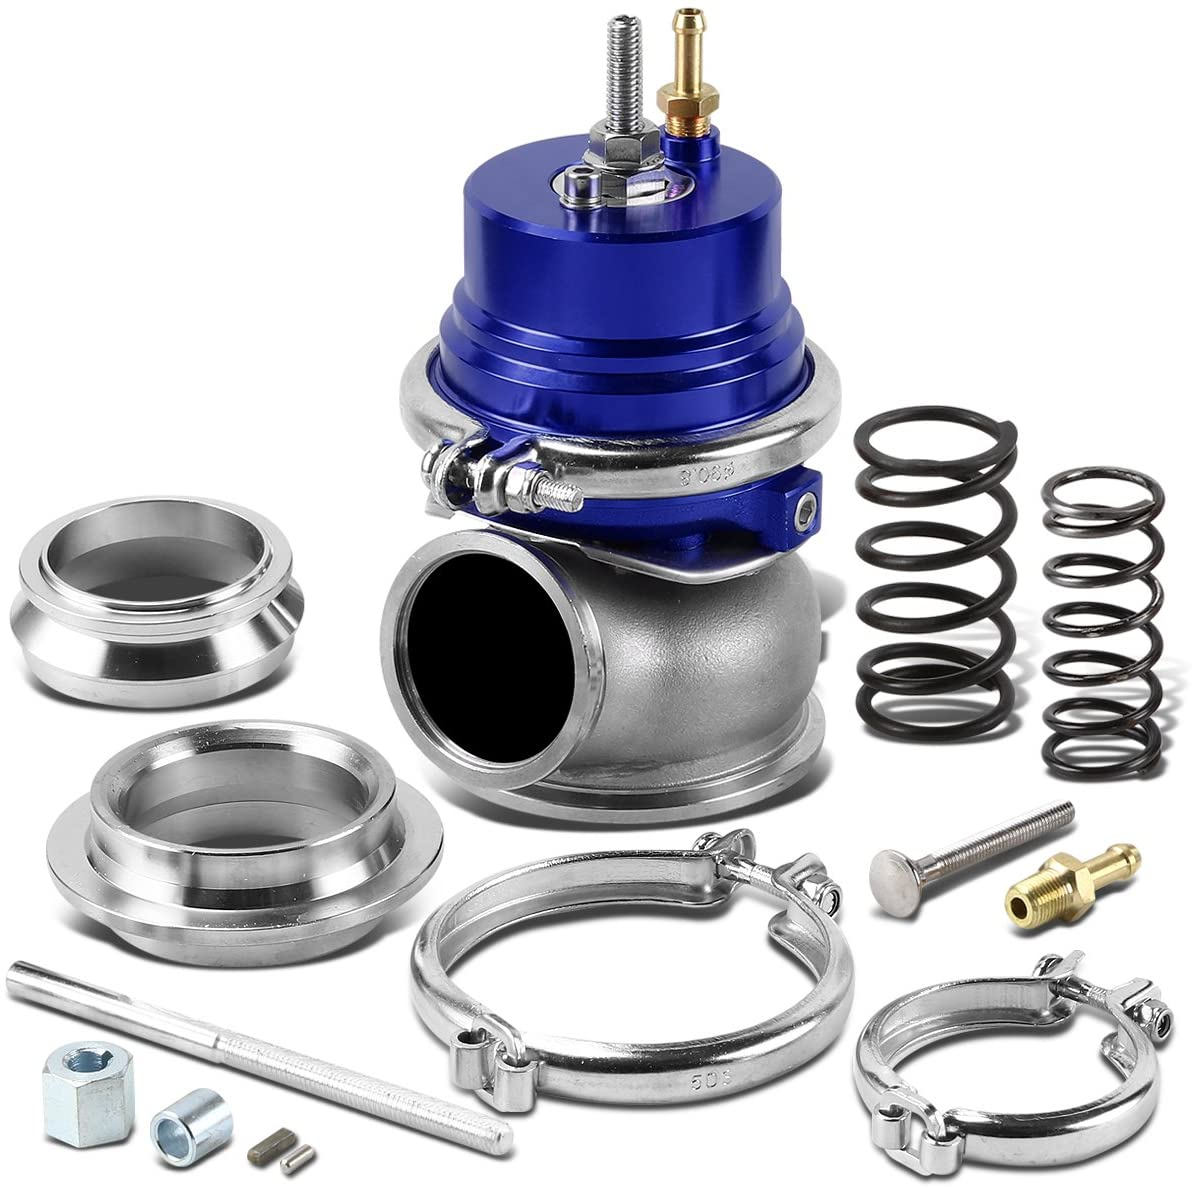 60mm Bolt-on 5/12/14 PSI External Turbo Exhaust Manifold Wastegate (Blue)